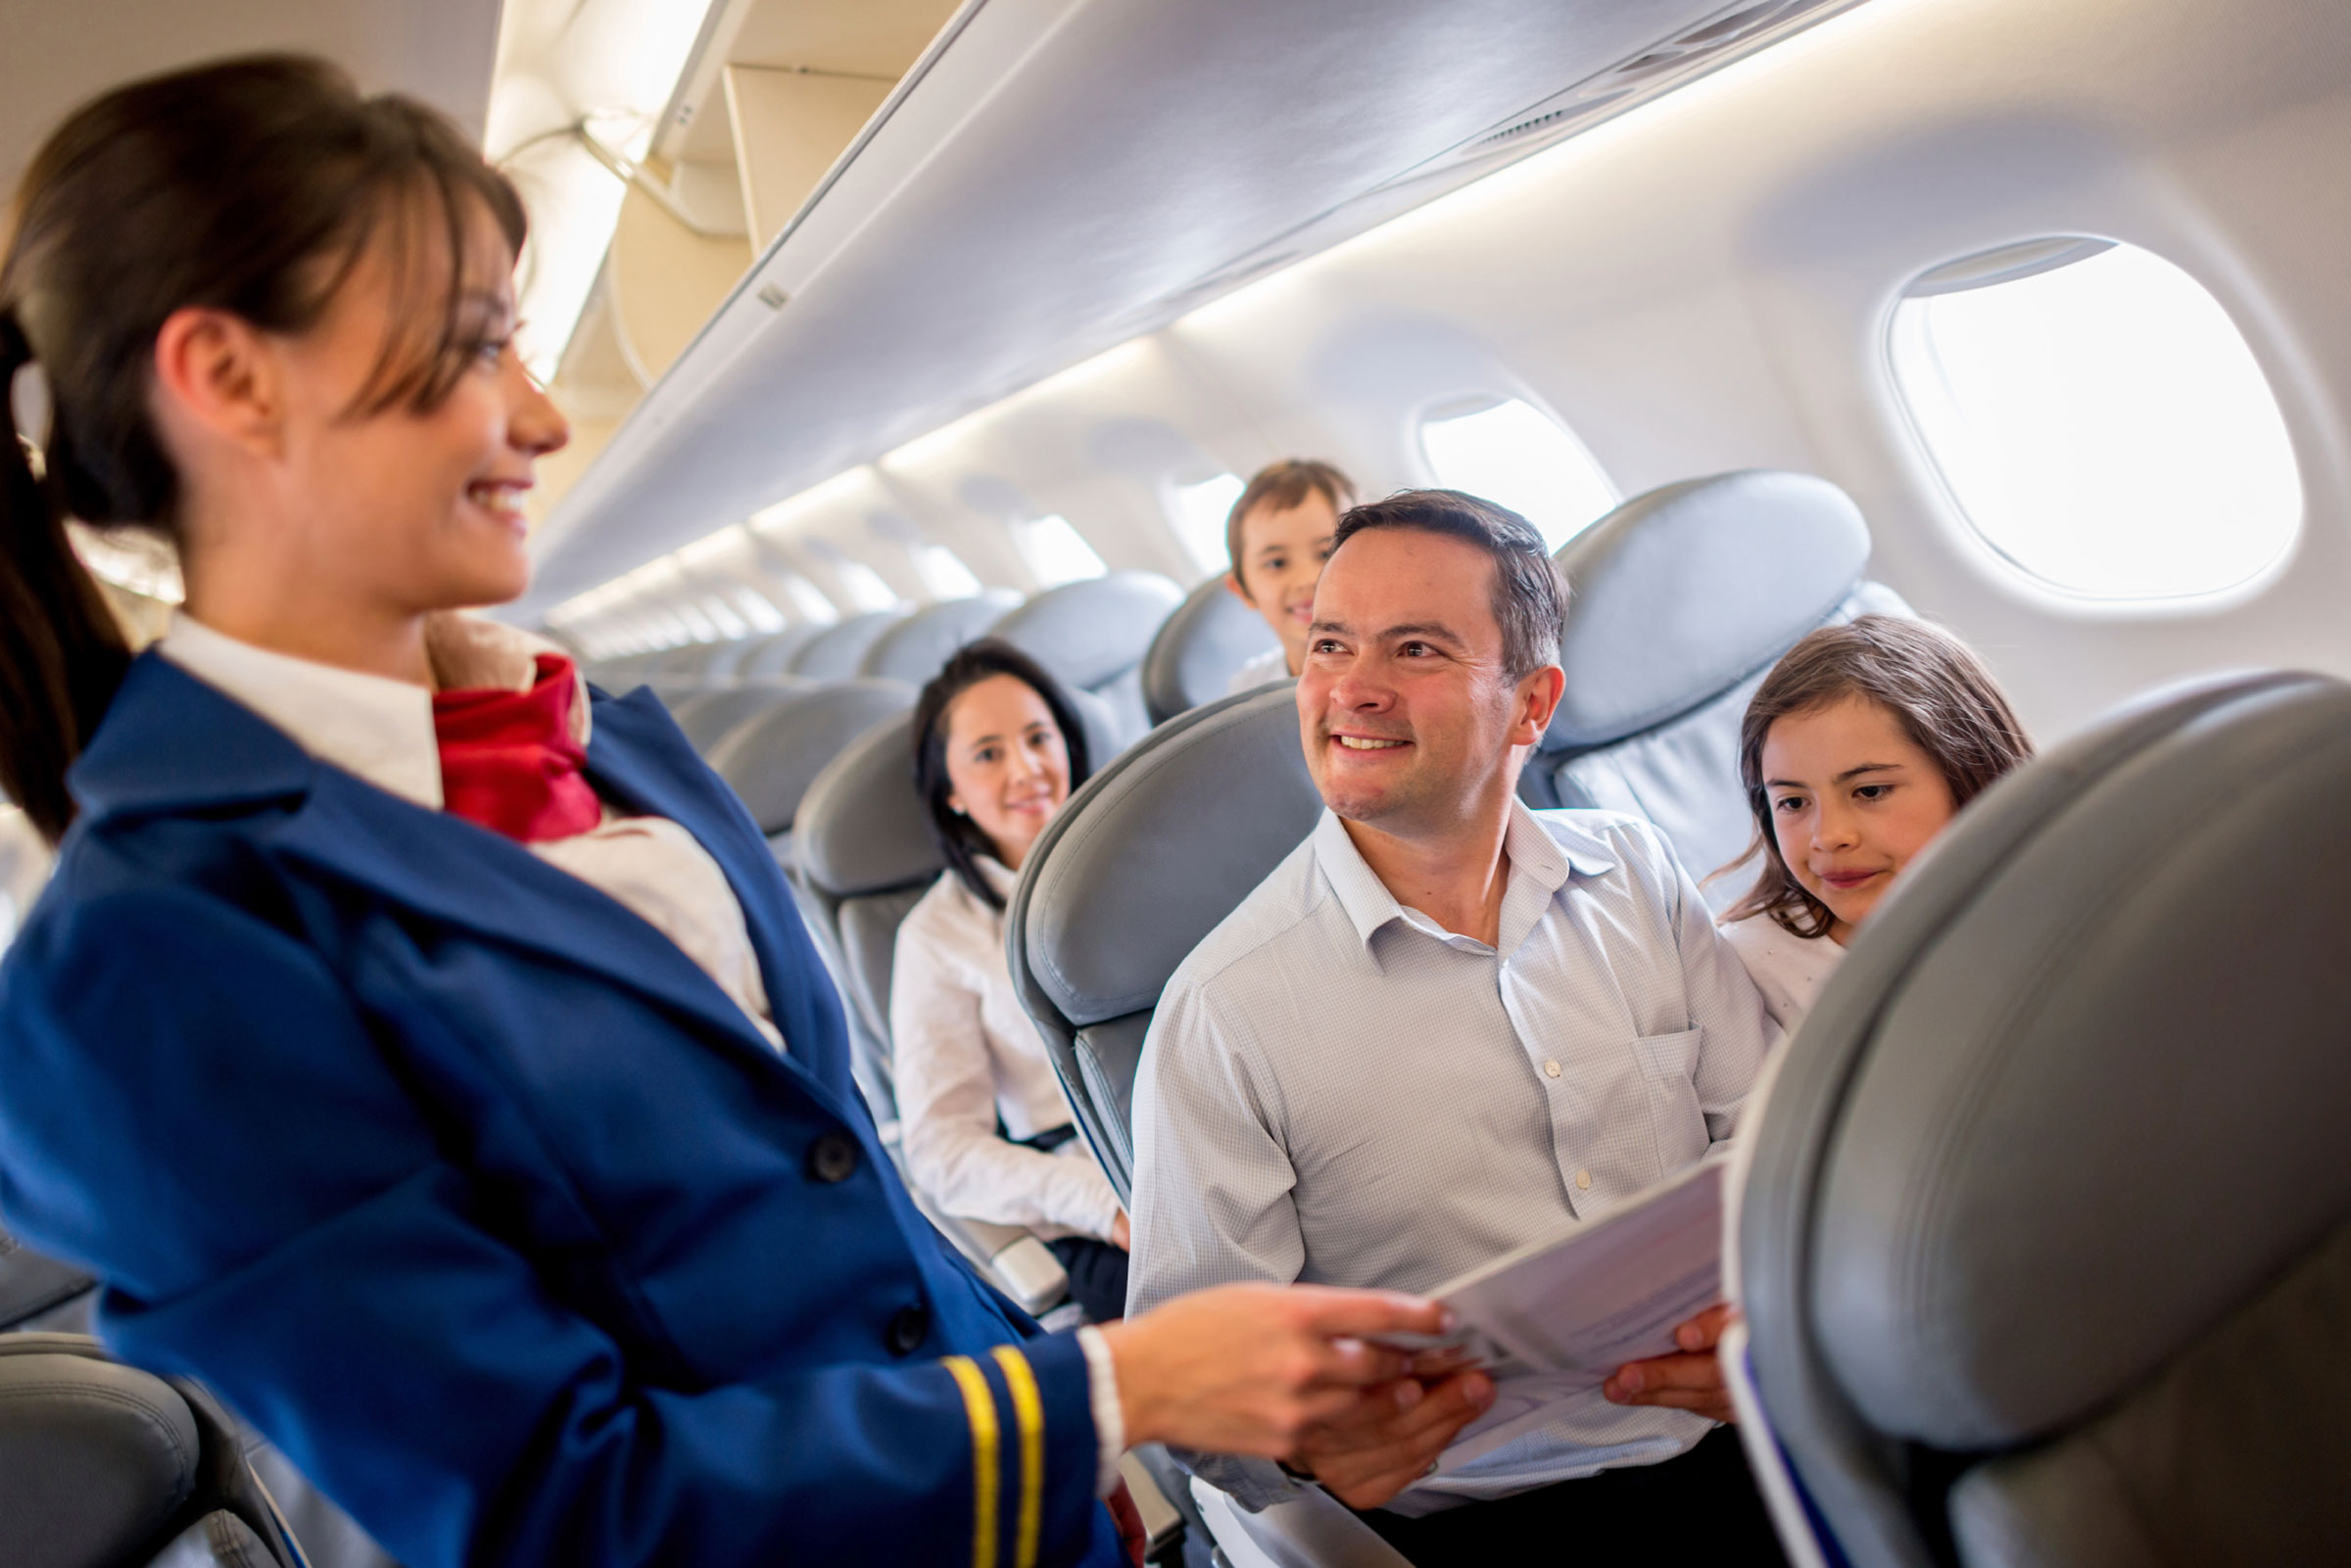 Best Things About Being a Flight Attendant